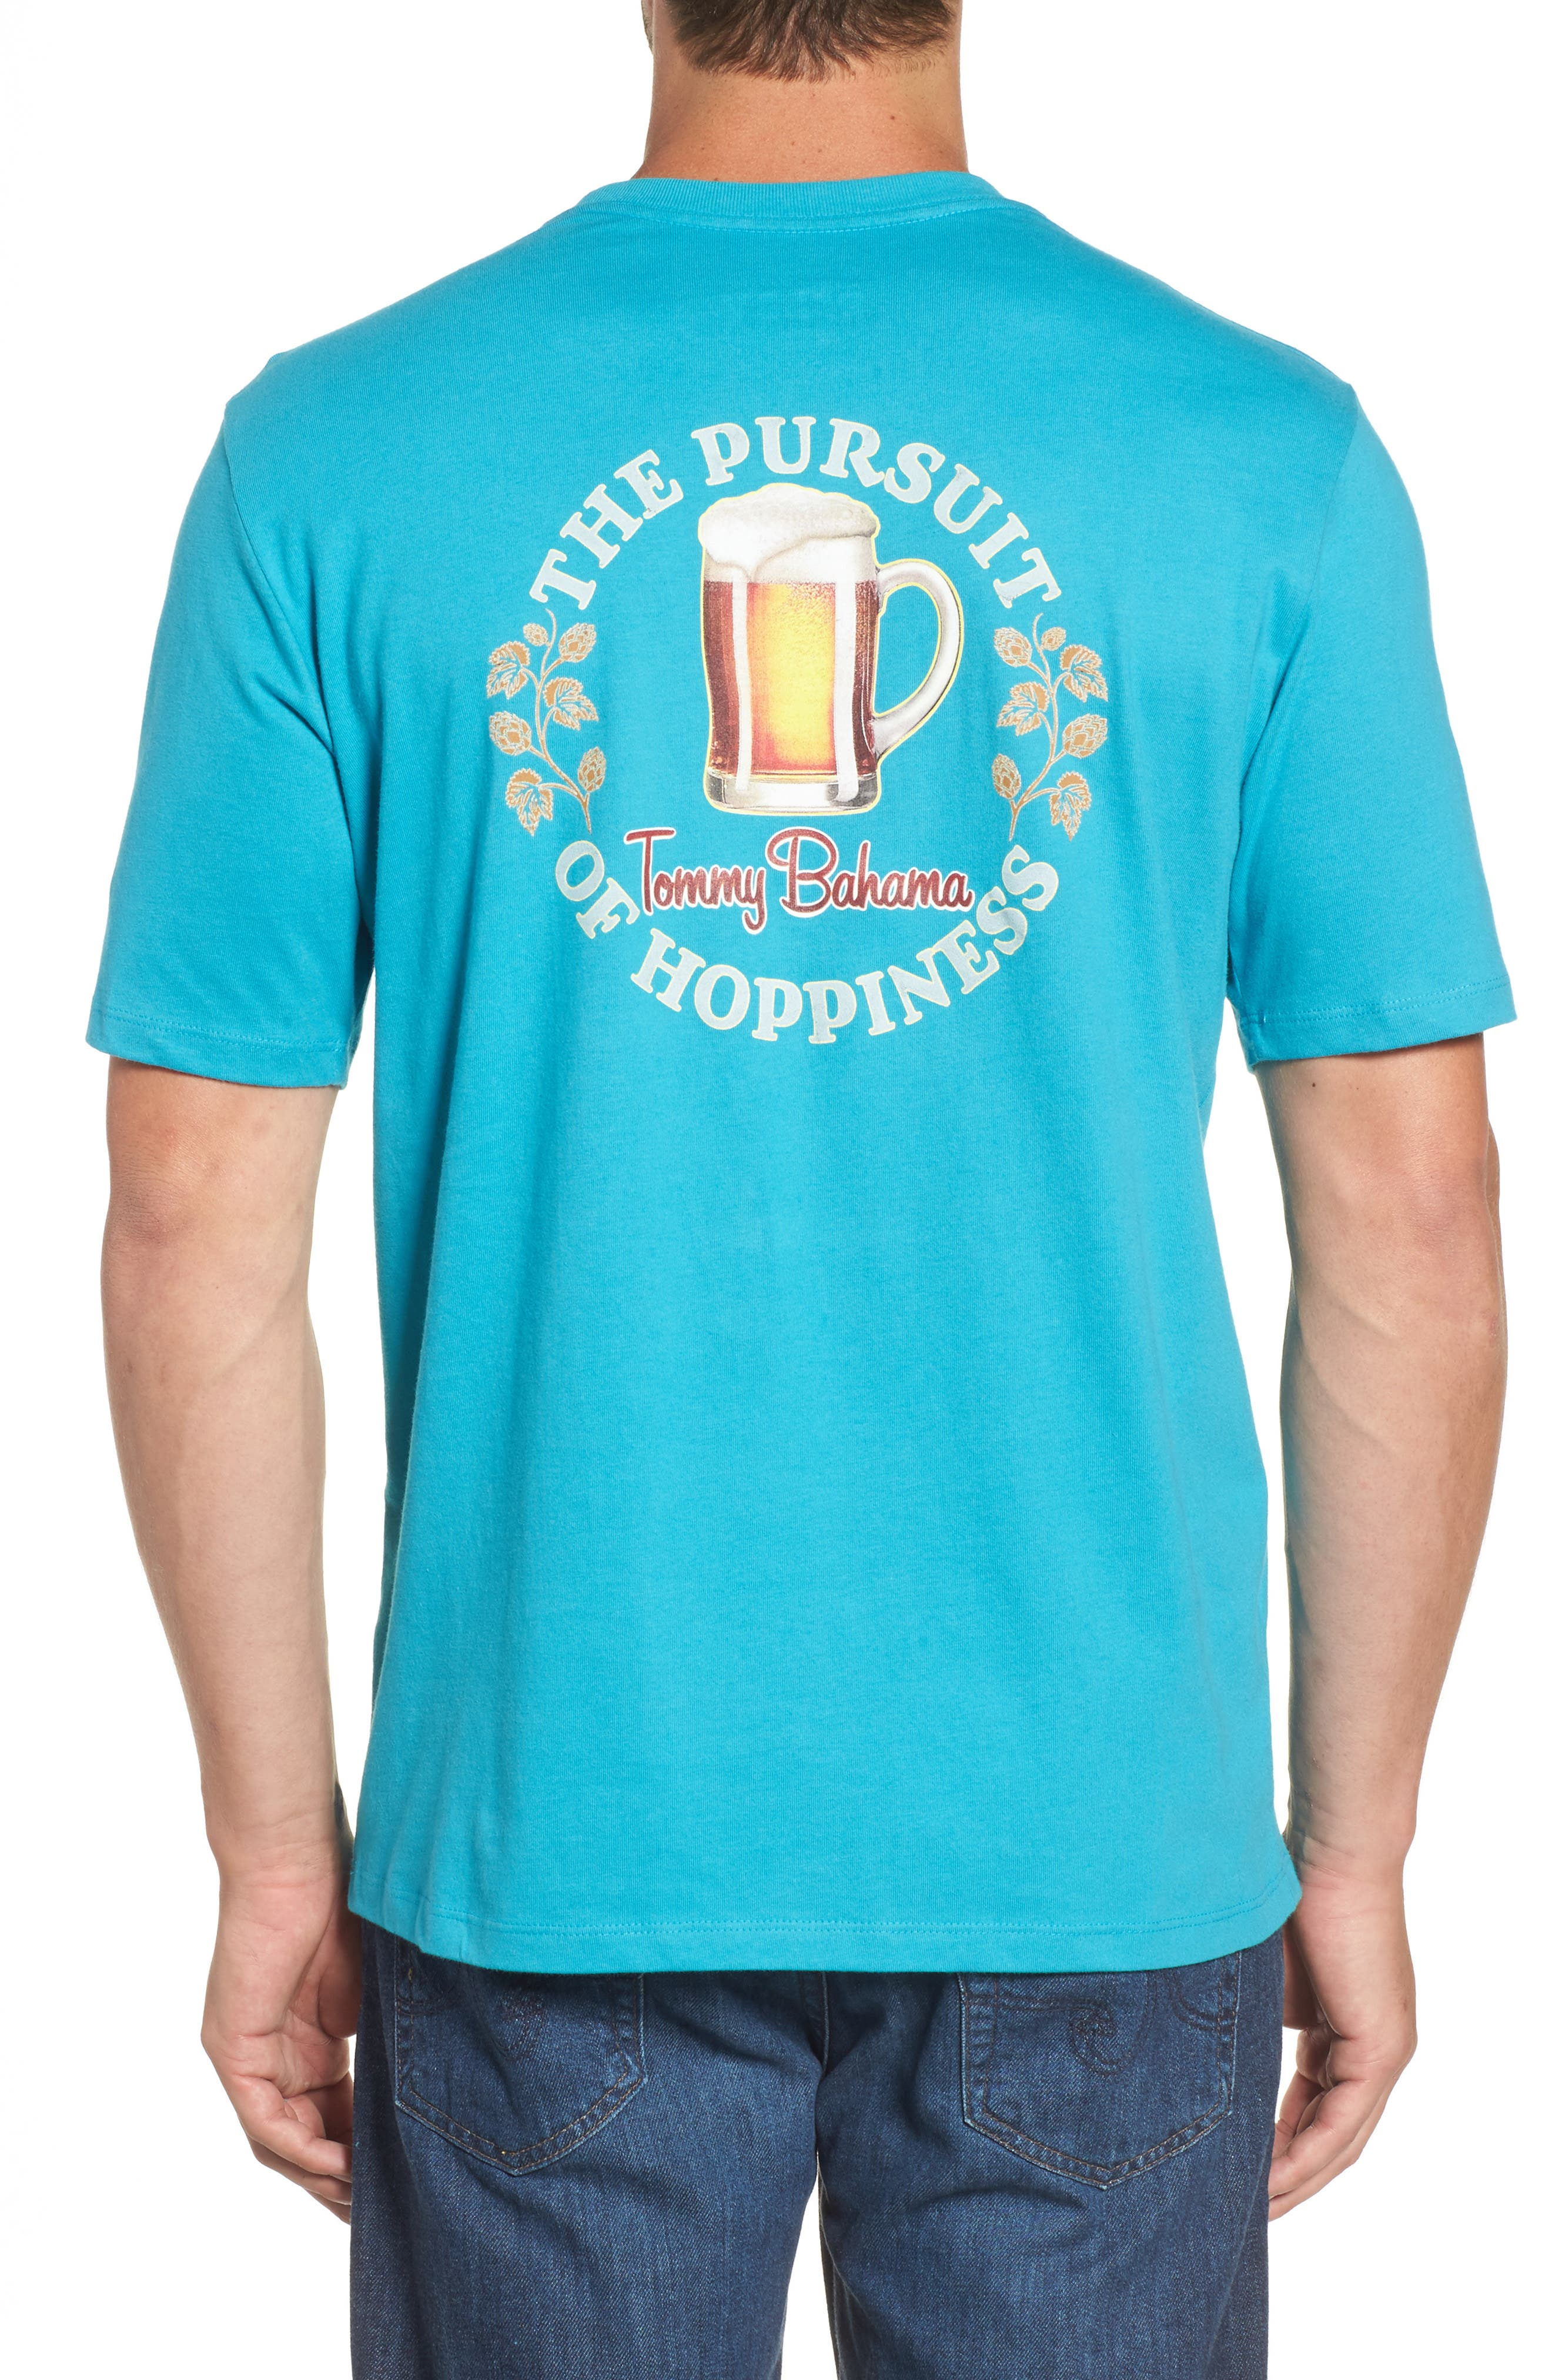 Main Image - Tommy Bahama The Pursuit of Hoppiness Graphic T-Shirt